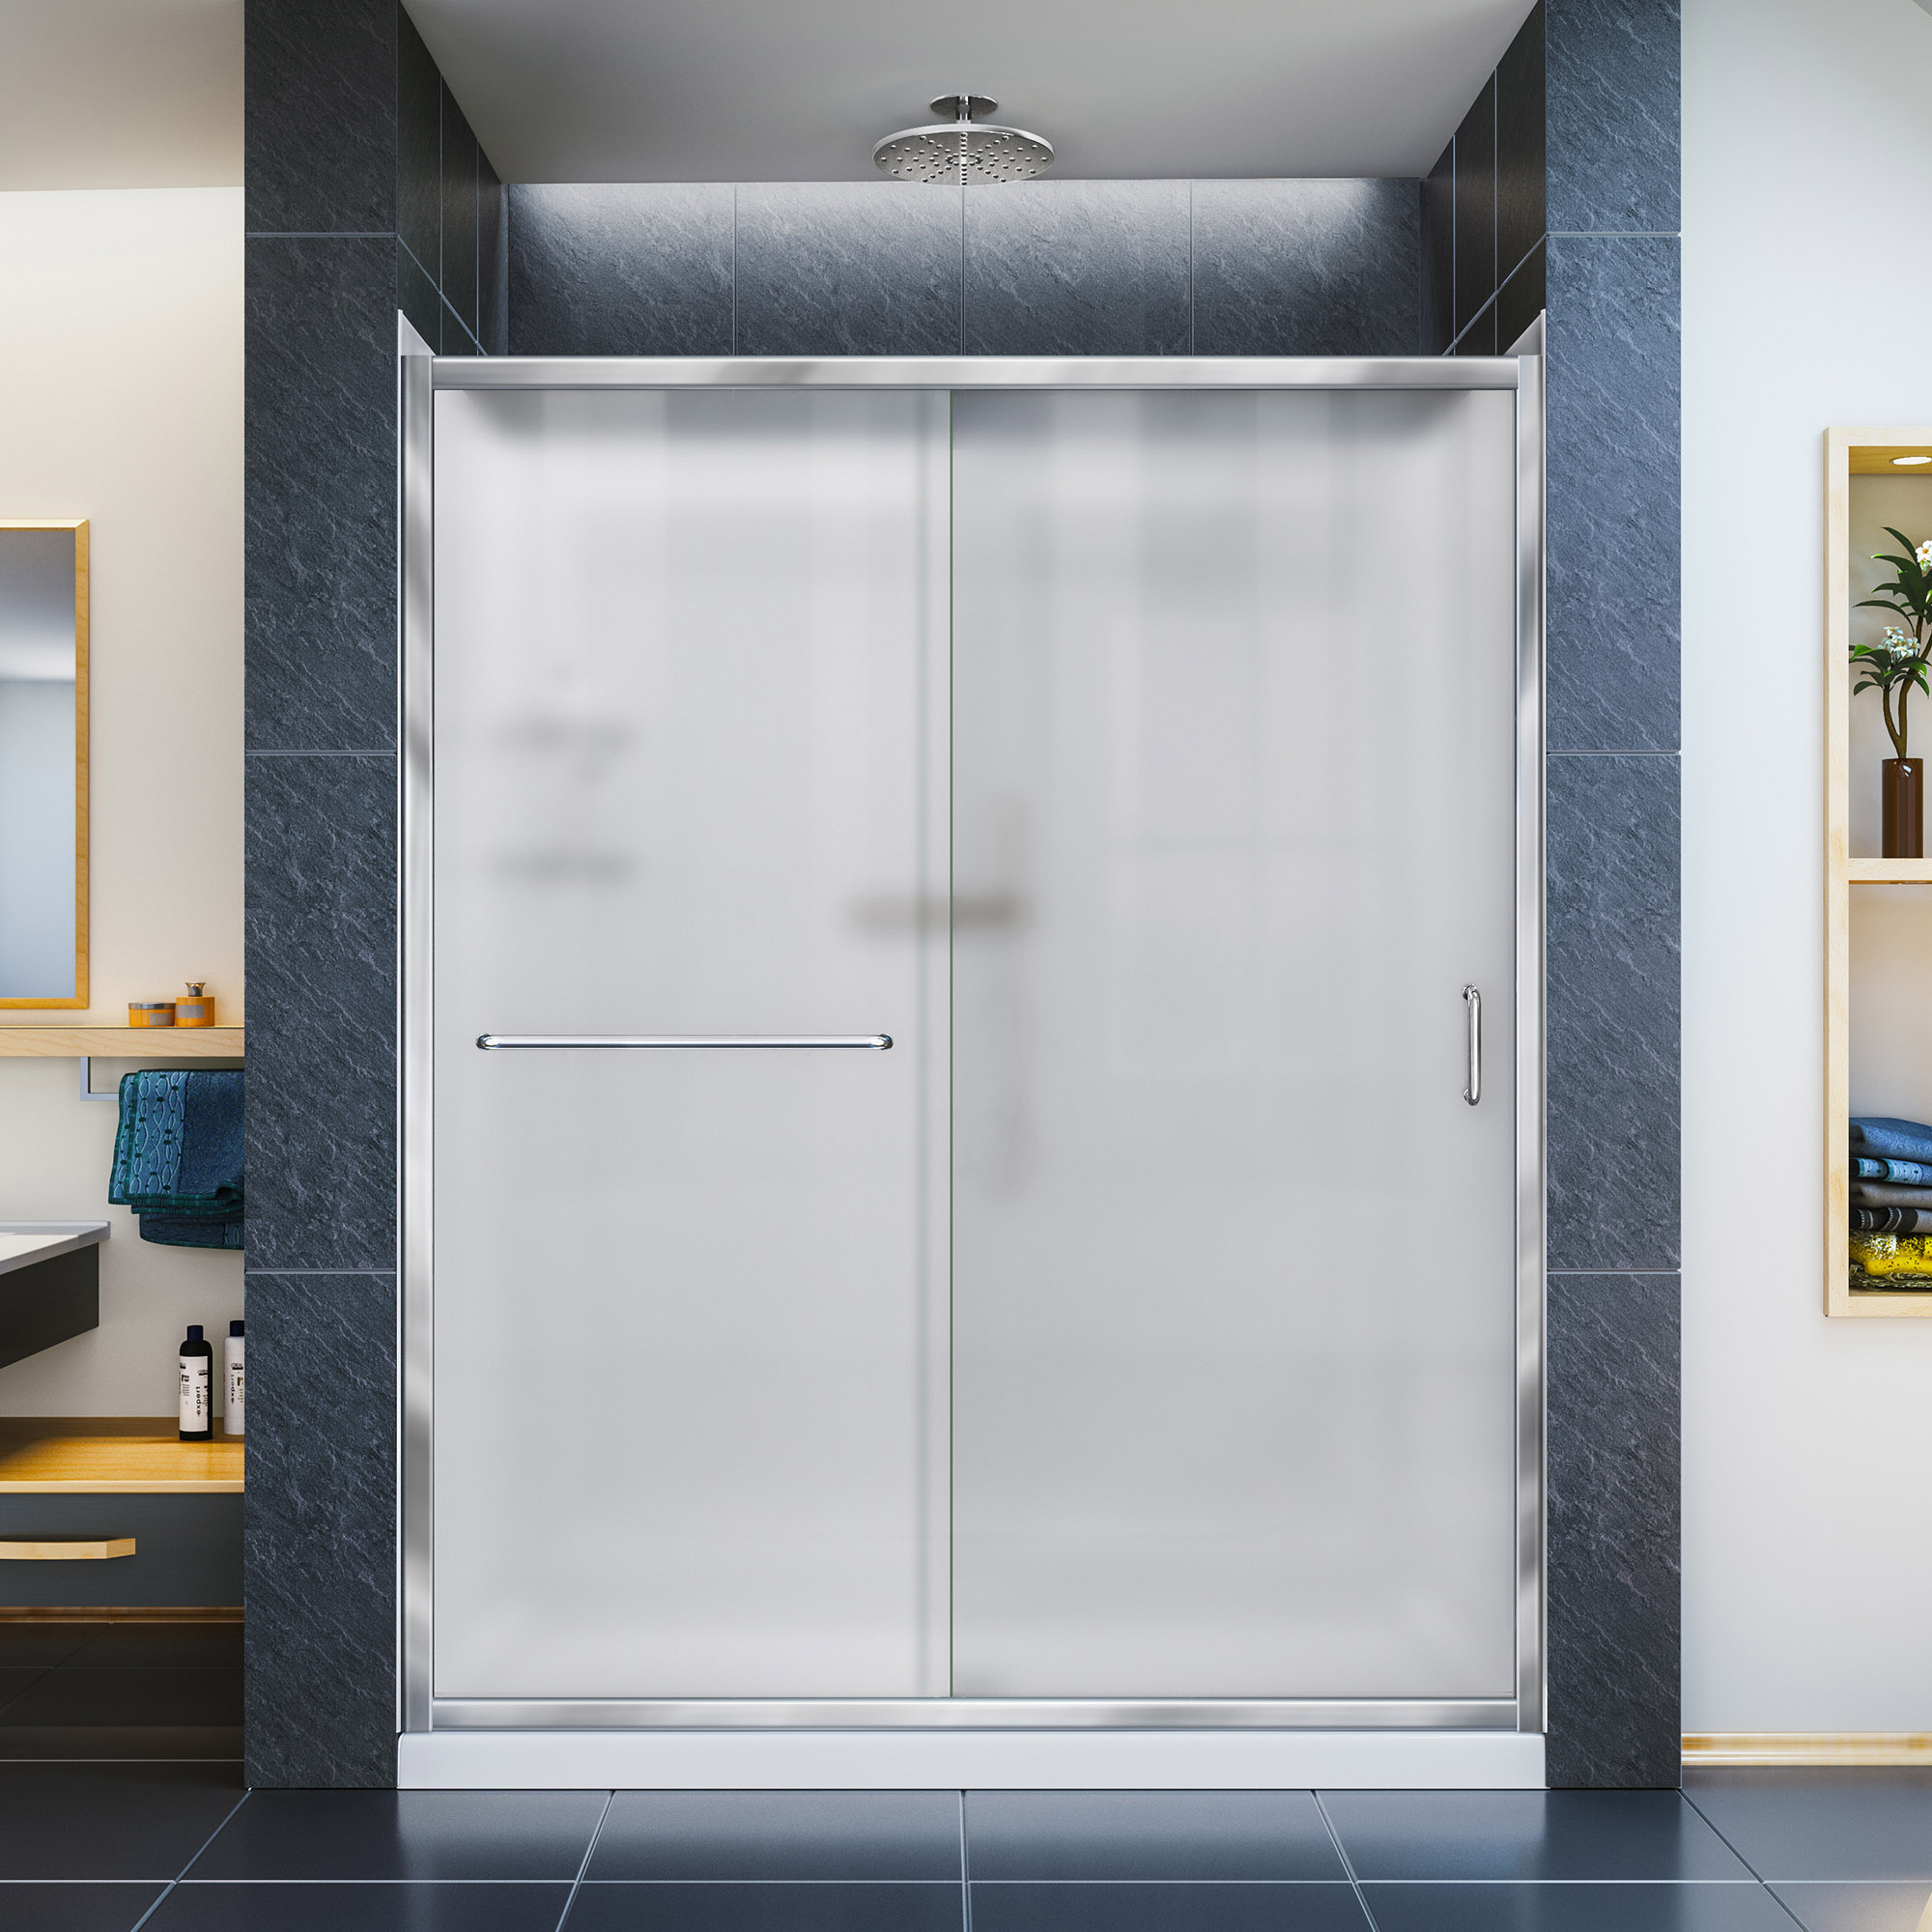 DreamLine Infinity-Z 32 in. D x 60 in. W x 76 3/4 in. H Frosted Sliding Shower Door in Chrome, Right Drain Base and Backwalls